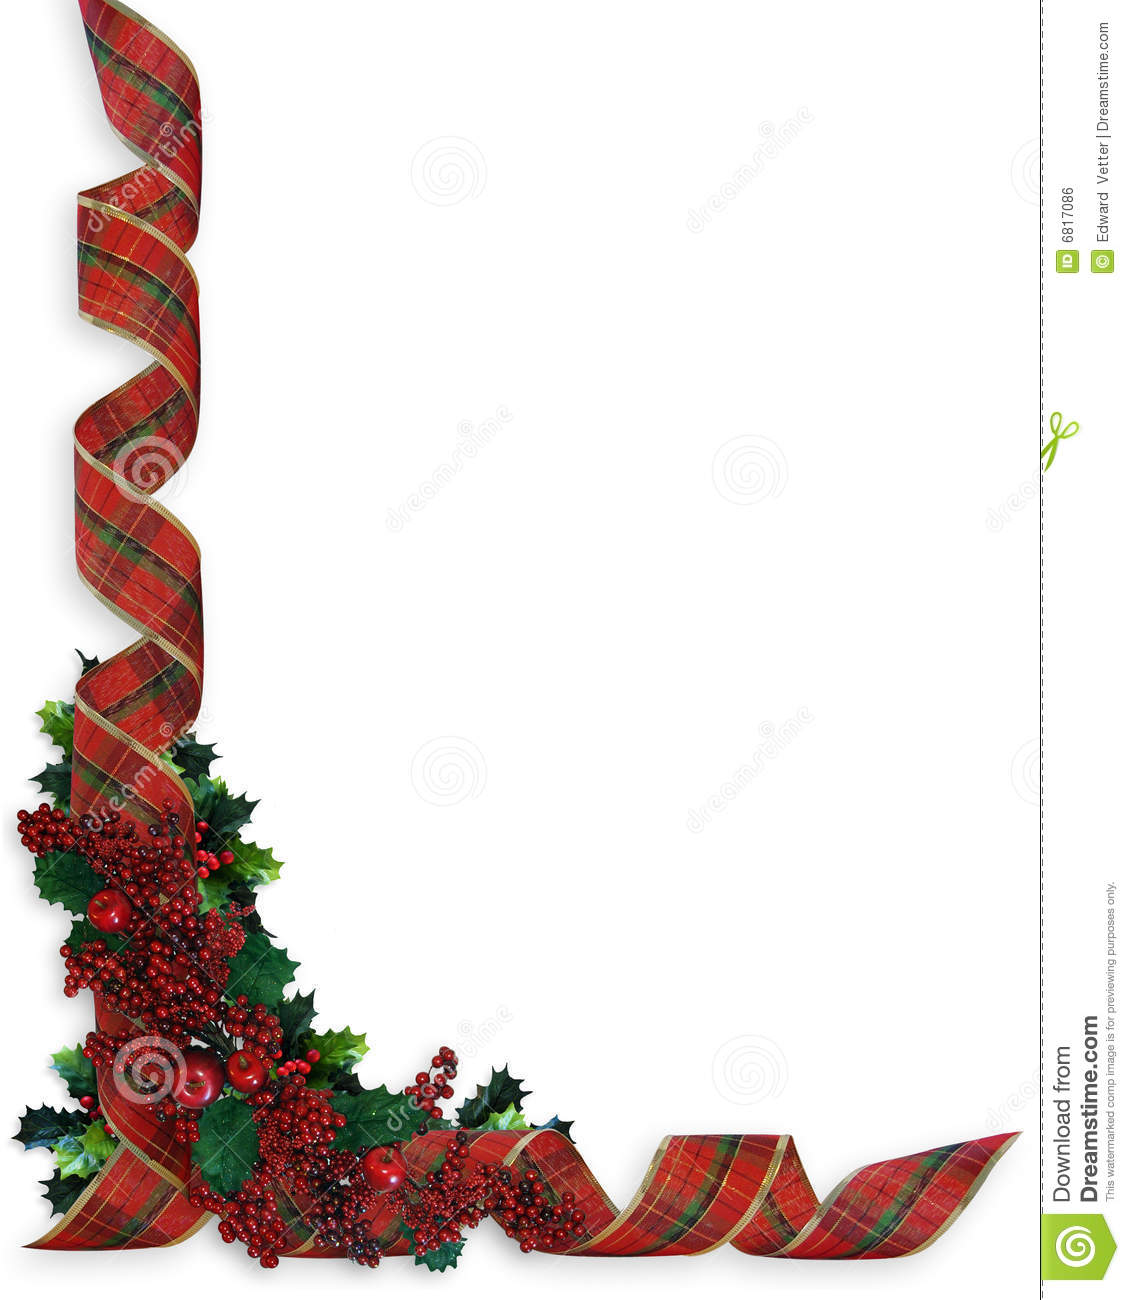 Christmas Ribbons Holly Border Royalty Free Stock Image - Image ...